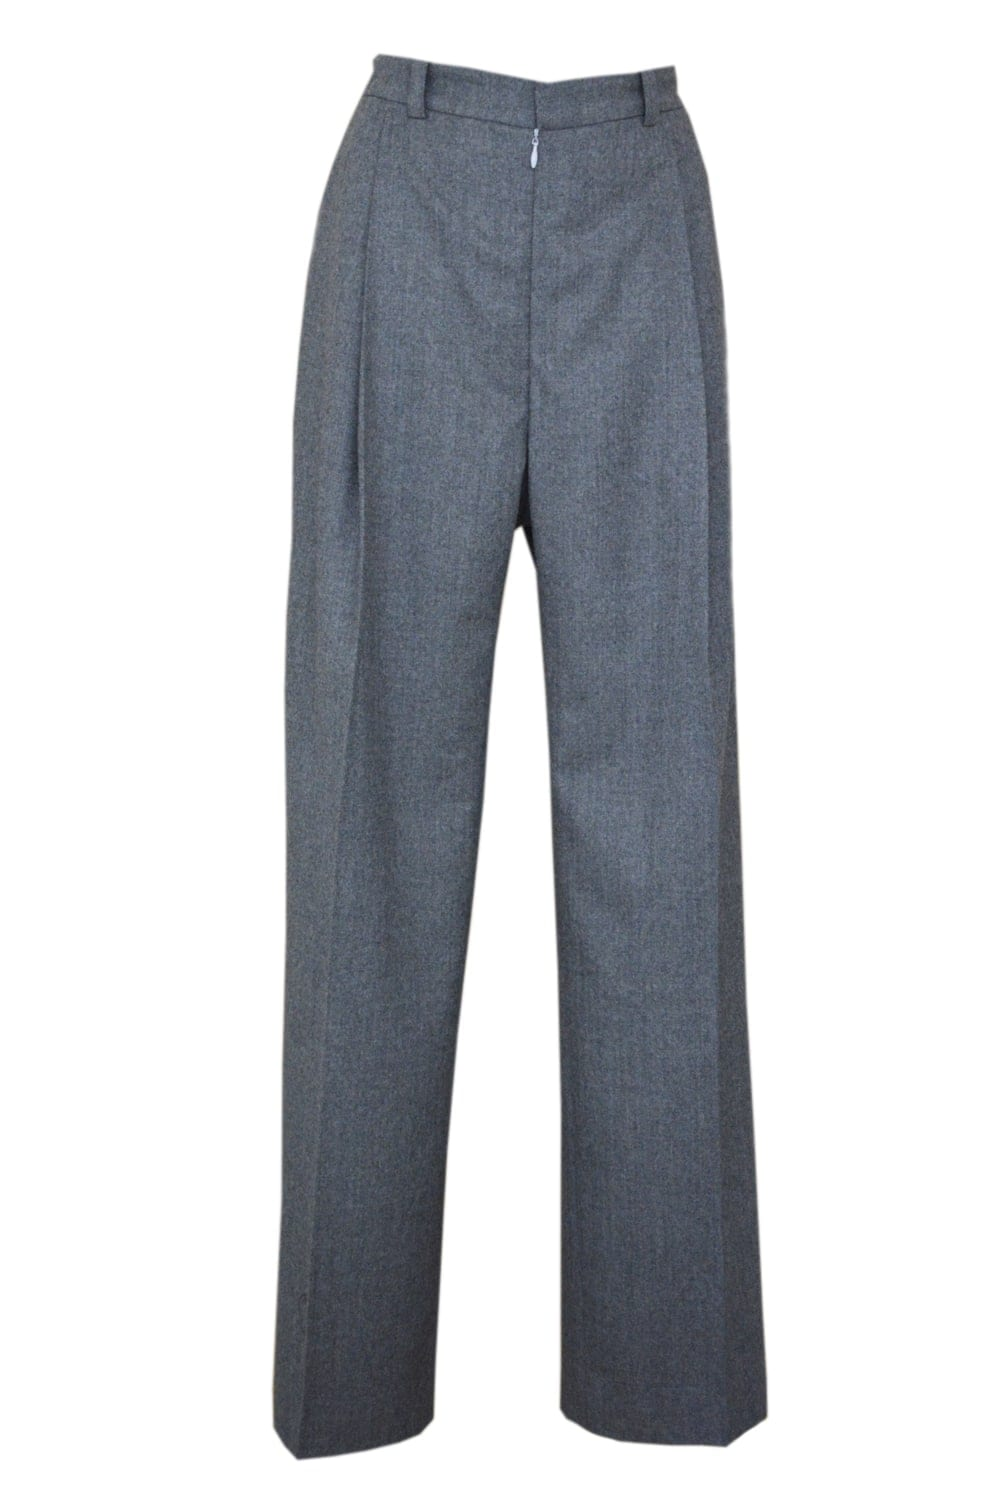 Wide gray high waist trousers with flat pleats on the front.